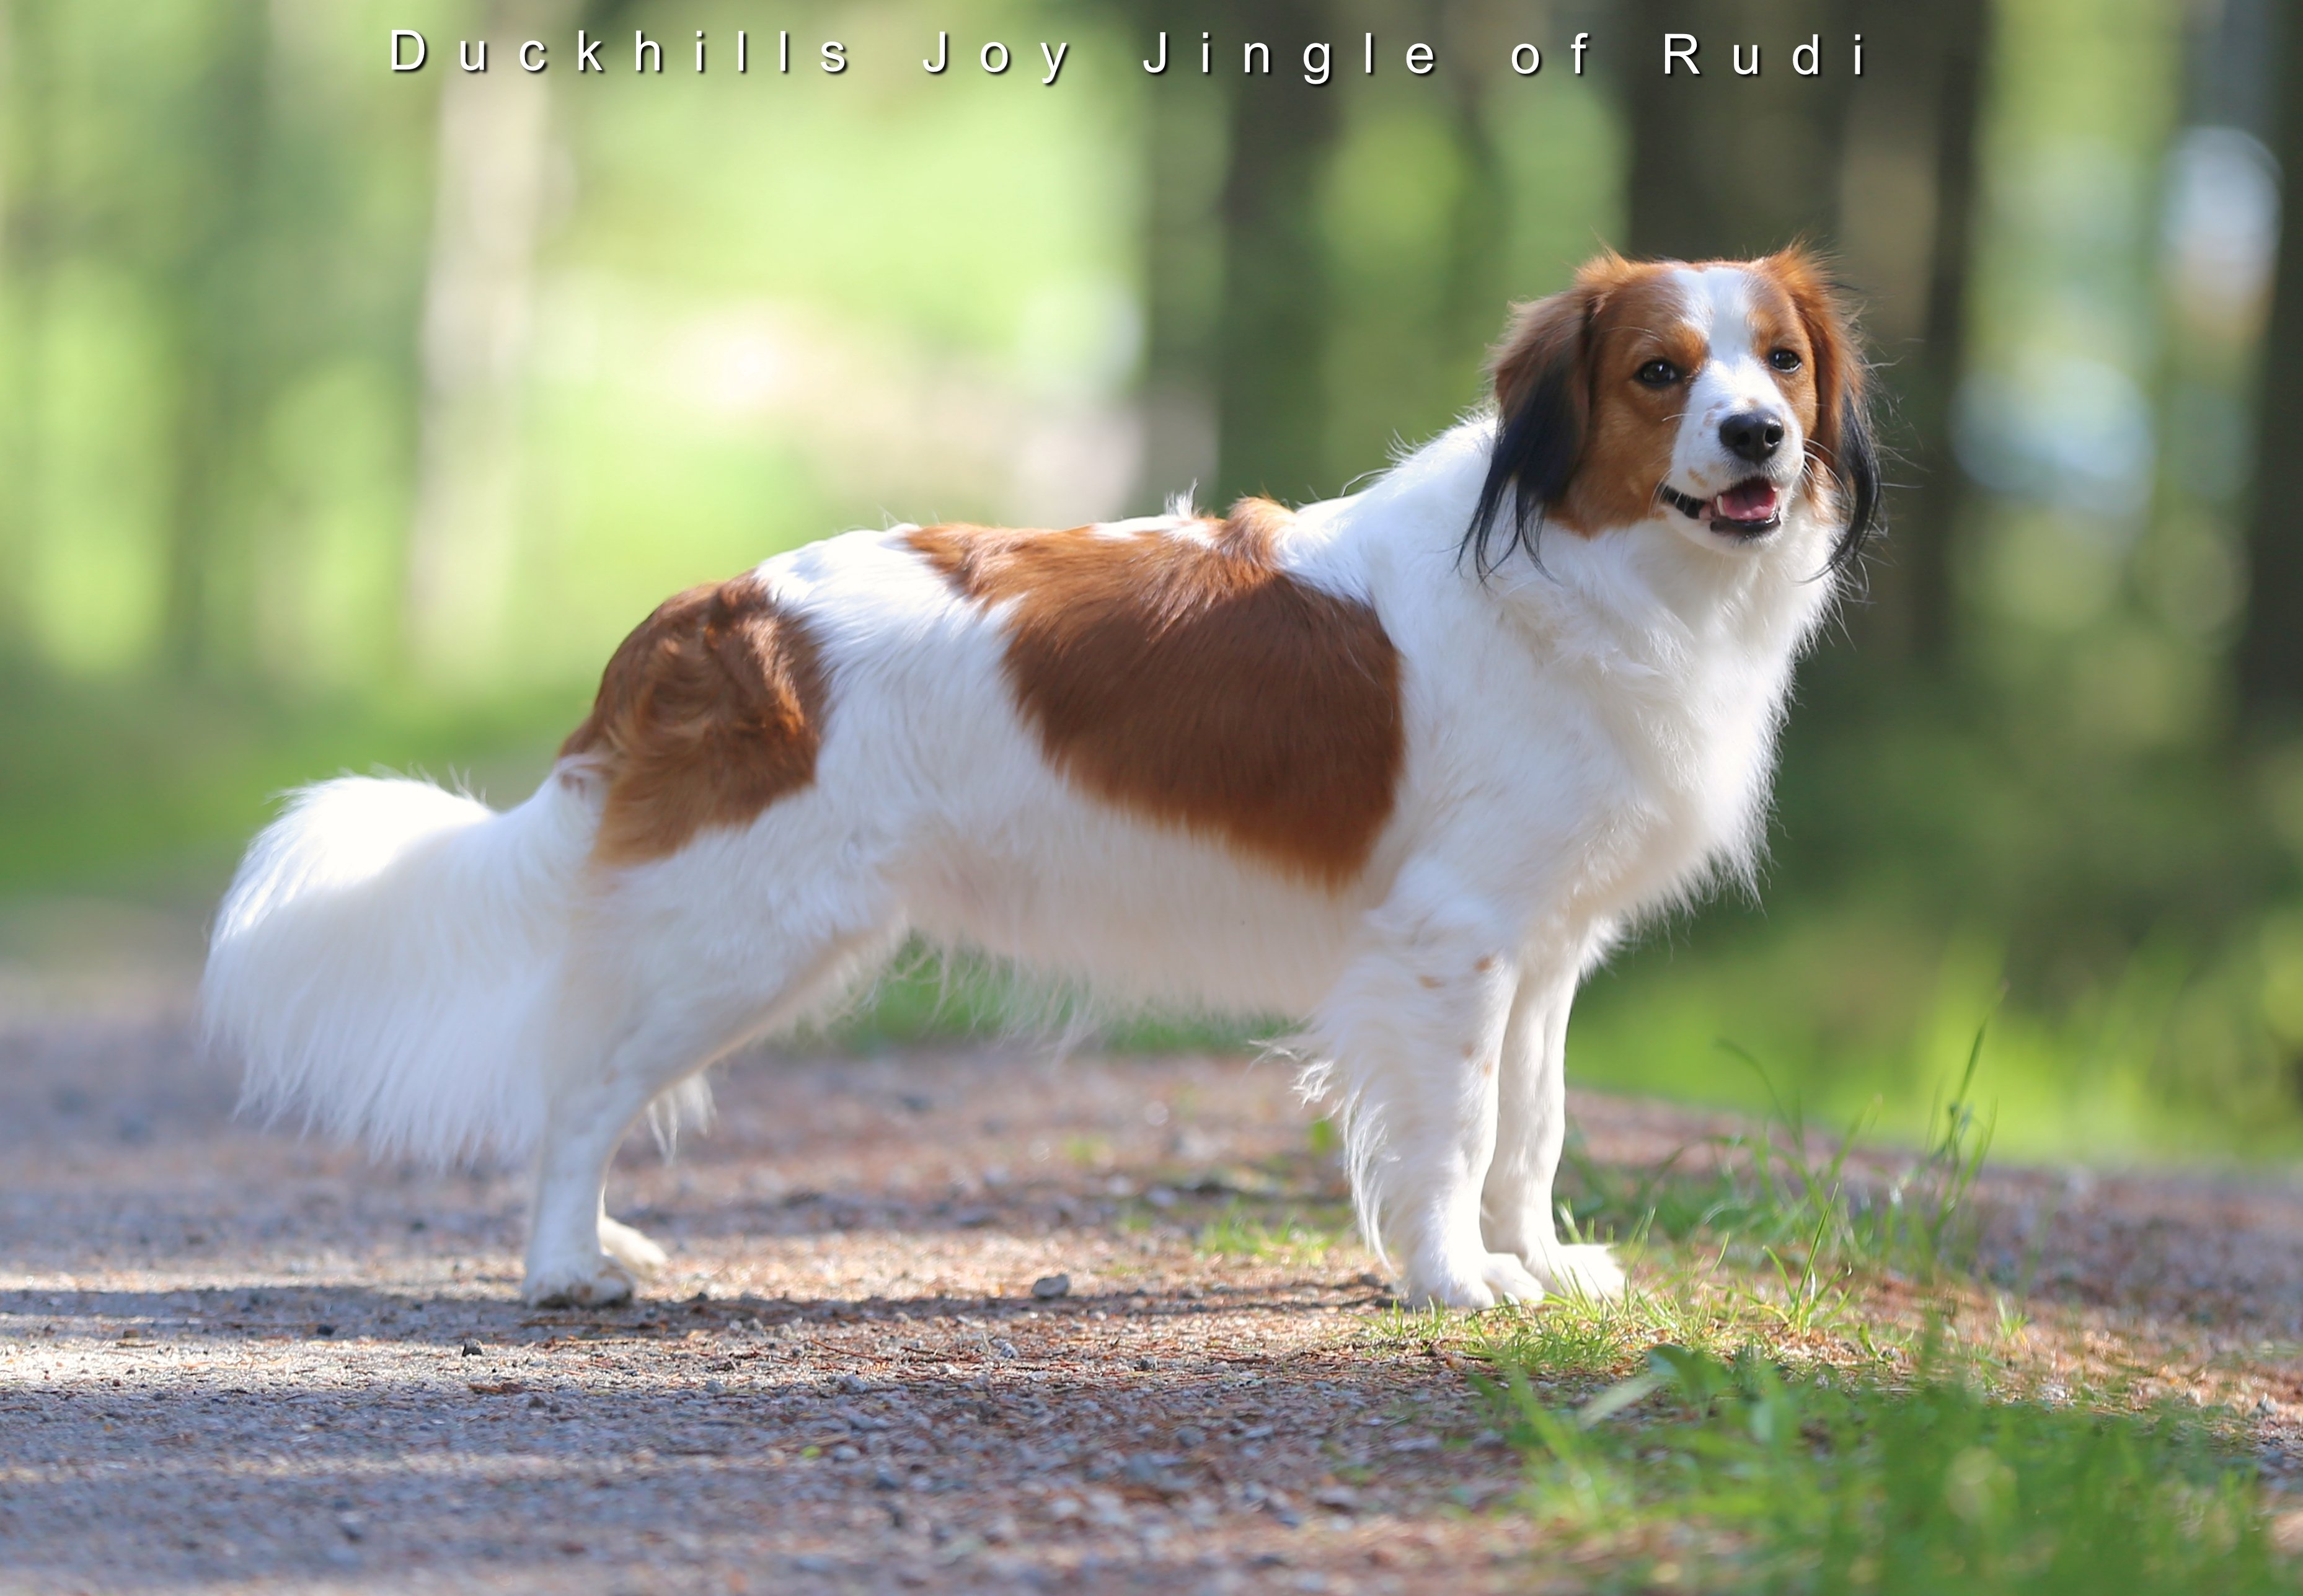 Duckhills Joy Jingle of Rudi 22months